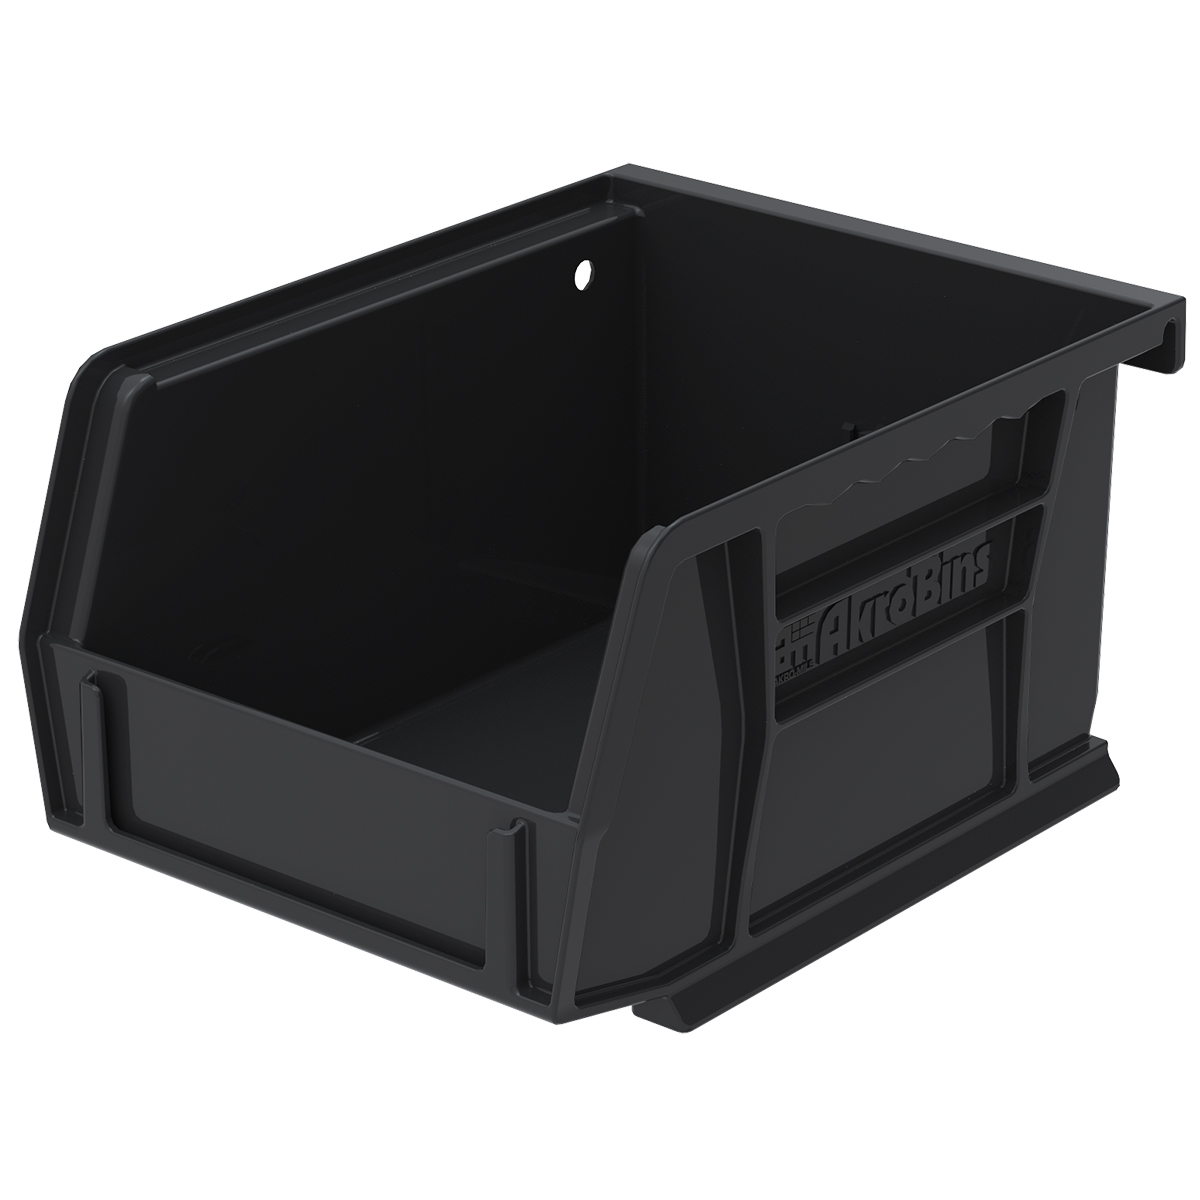 AkroBin 5-3/8 x 4-1/8 x 3, Black (30210BLACK).  This item sold in carton quantities of 24.